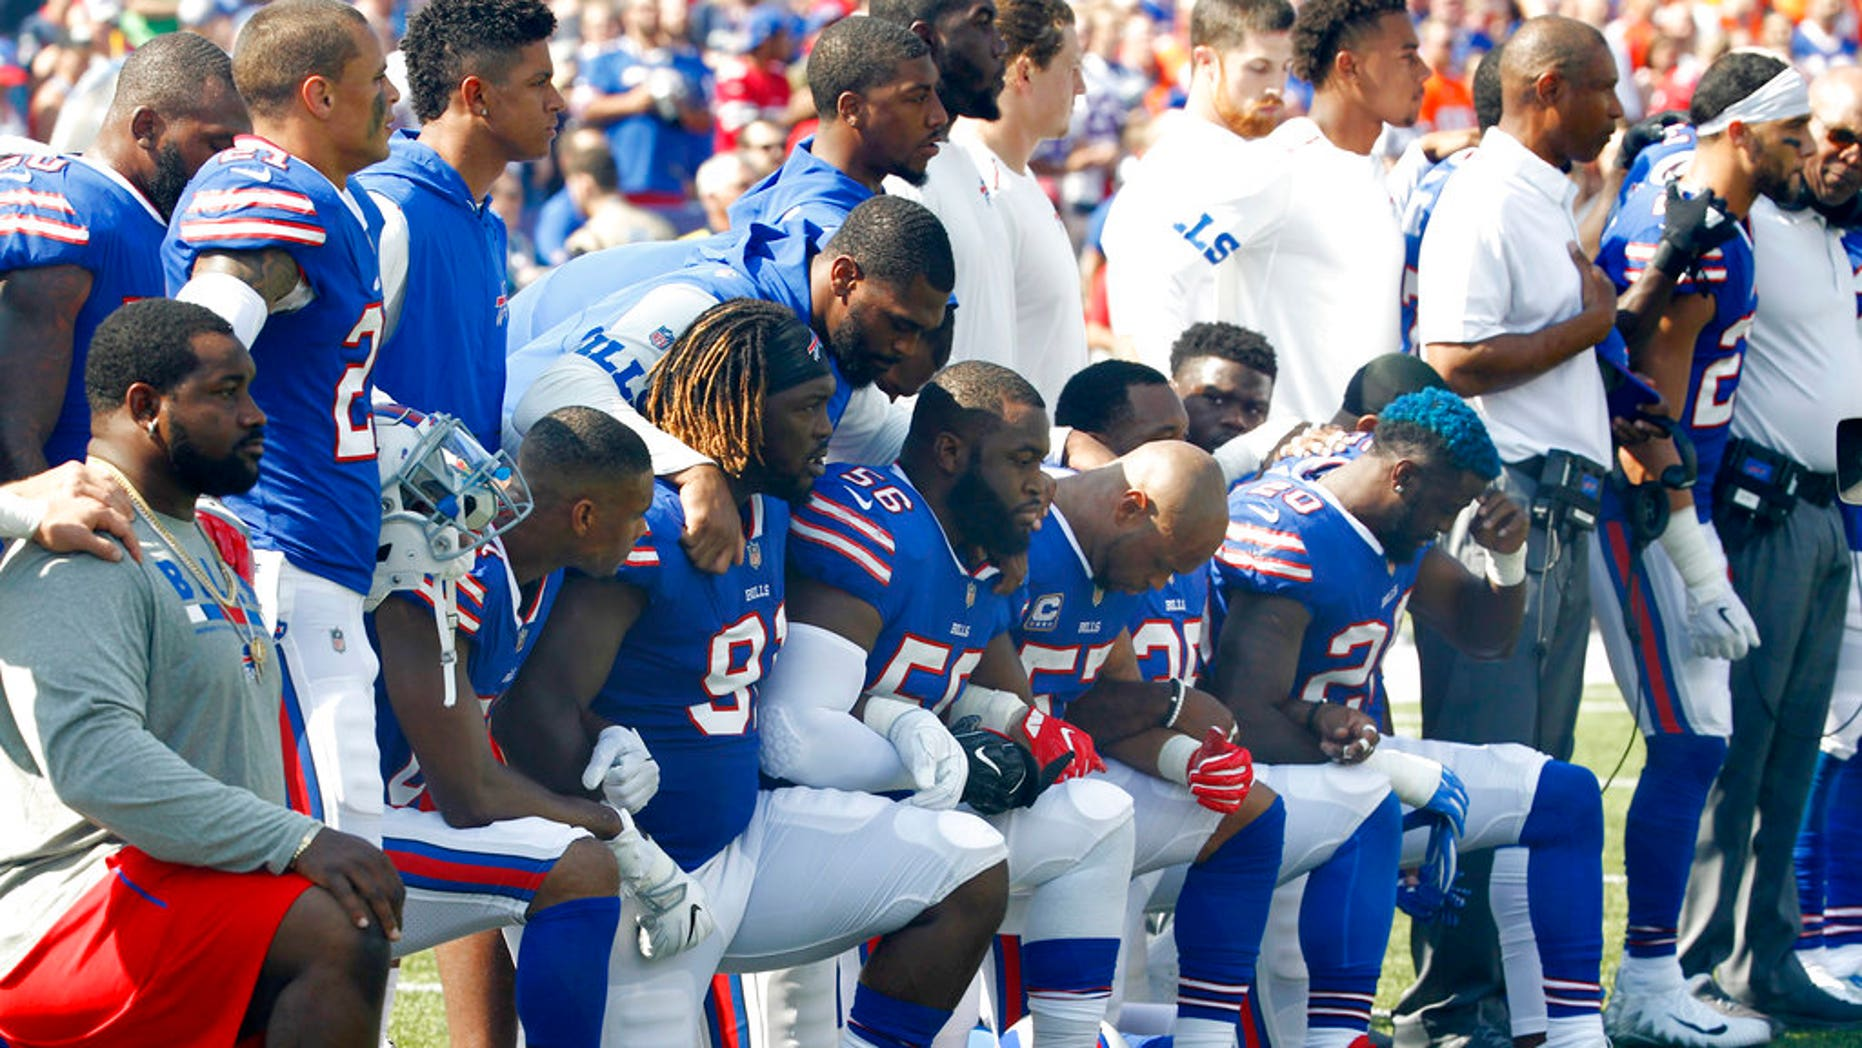 Buffalo Bills players take a knee during the national anthem Sept. 24 ahead of their game against the Denver Broncos.